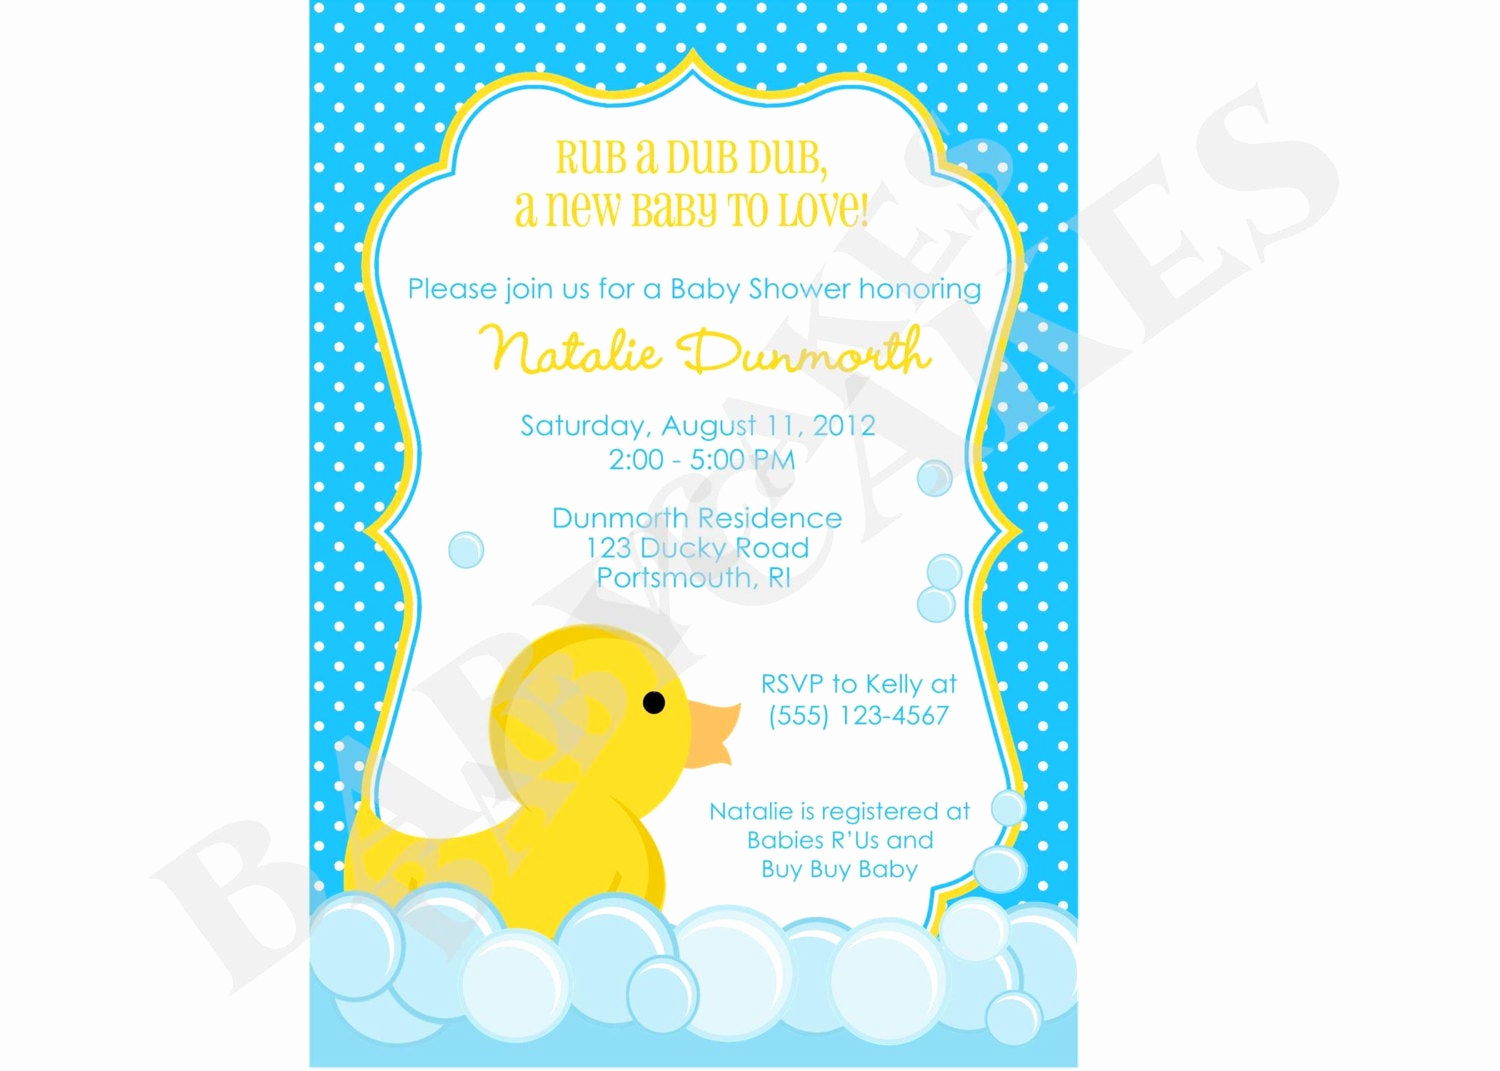 Rubber Duck Baby Shower Invitation Fresh Rubber Ducky Baby Shower Invitation Invite Sprinkle Boy Blue